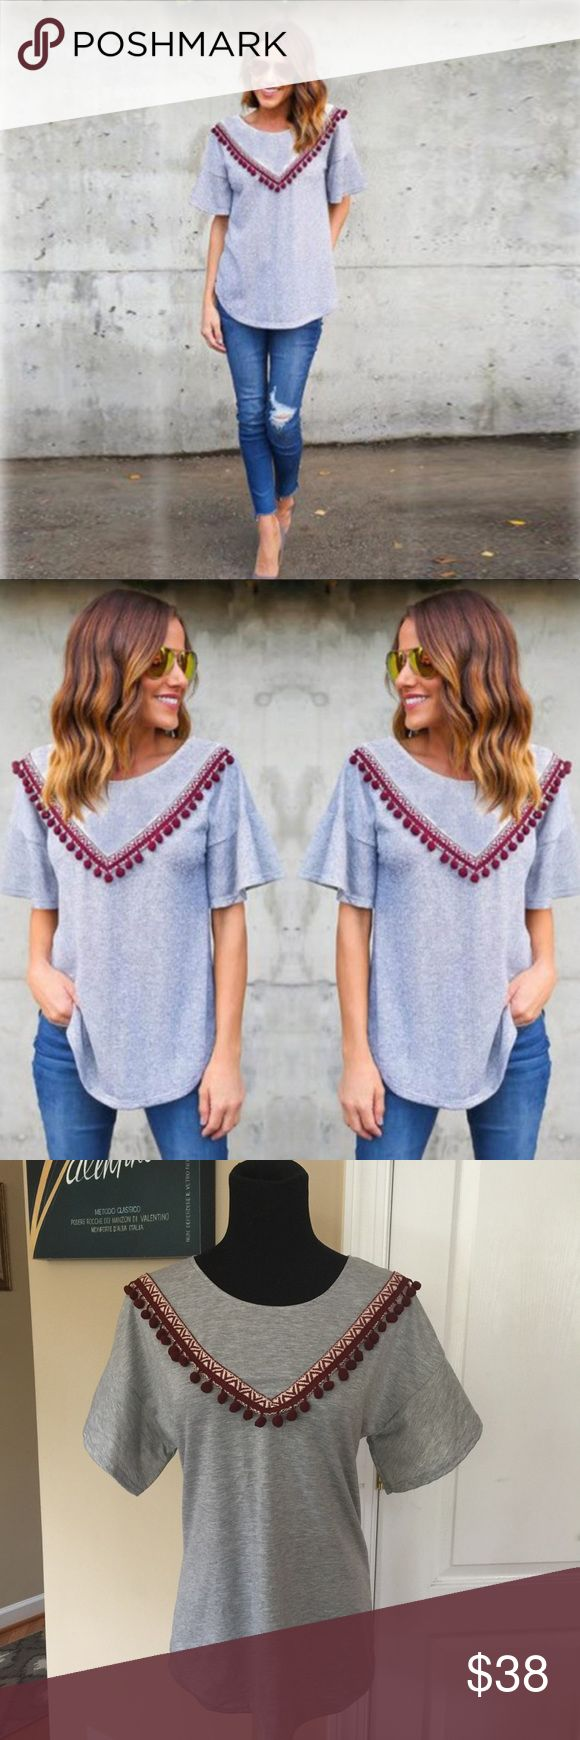 amazing t-shirt w/pom-pom fringe detail Such a great top I'm keeping one for myself! Stretchy 65/35 cotton poly grey T-shirt material with burgundy pom pom on Aztec style ribbon in a v pattern on from only. Sleeves have wide butterfly style and fits true to size M-36 L-38 before stretching Tops Tees - Short Sleeve